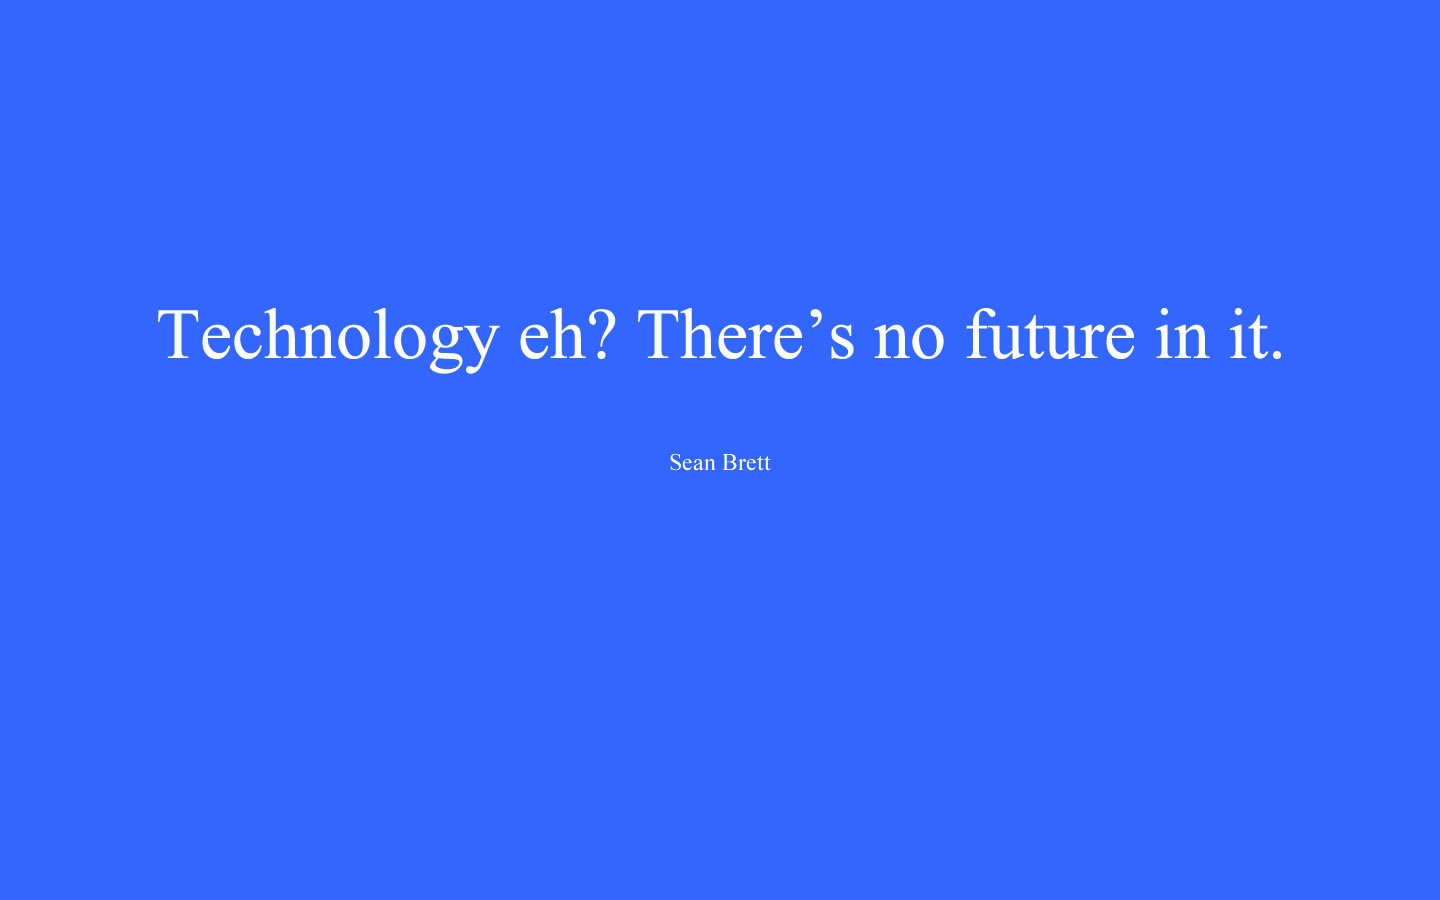 new high tech dating technology quotes